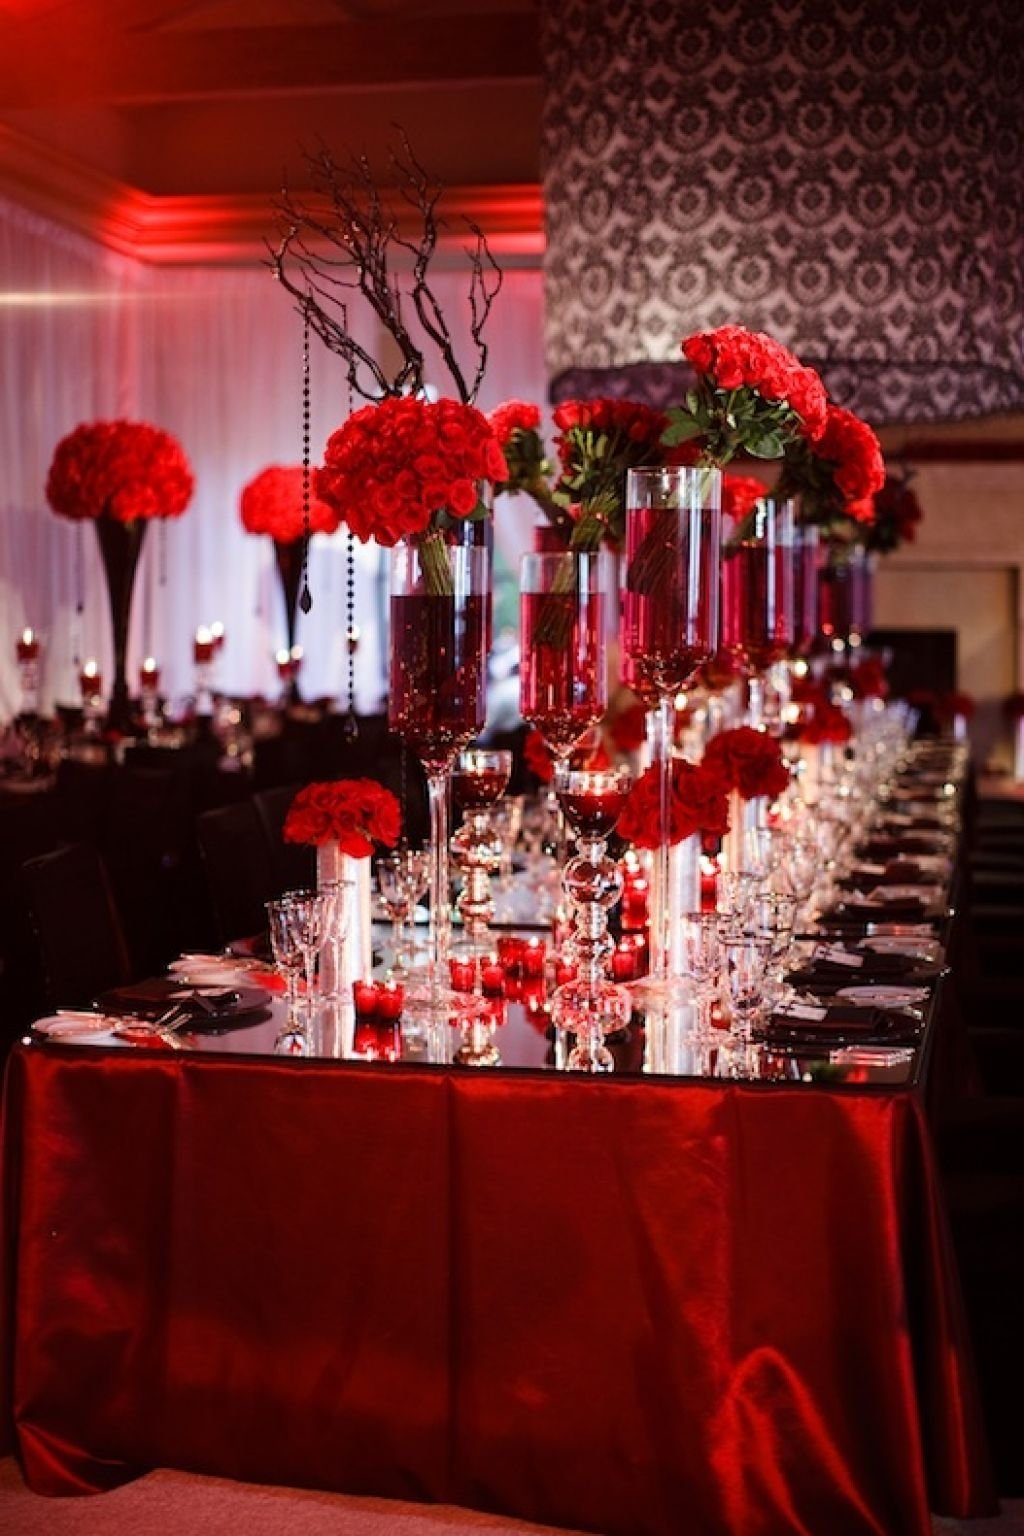 10 Fabulous Red Black And White Wedding Ideas wedding decorations red and white wedding ideas uxjj